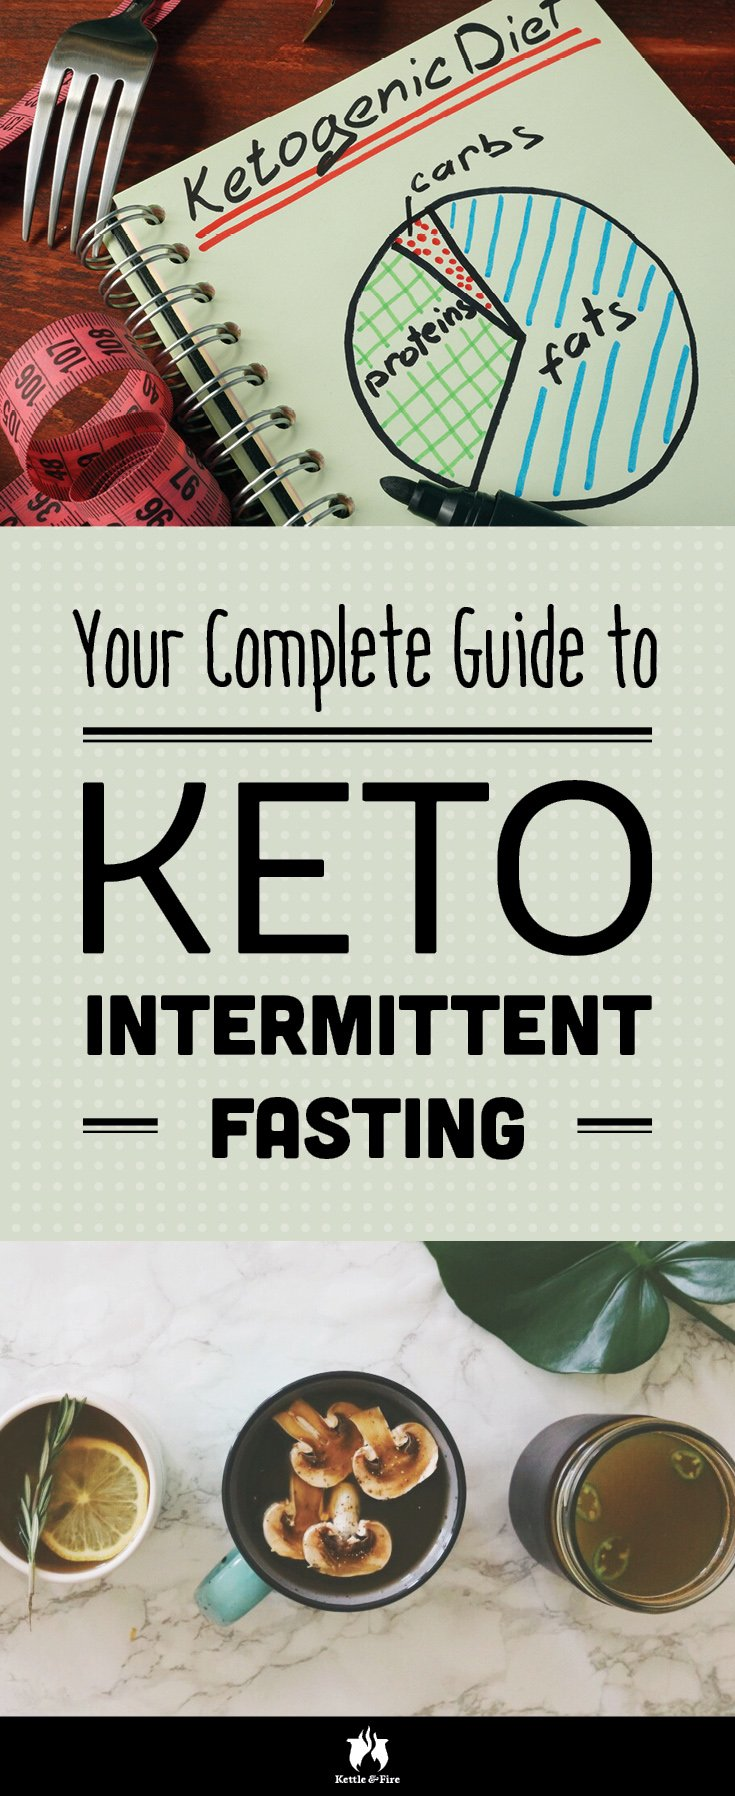 Keto intermittent fasting, is it doable? Find out 5 key benefits of intermittent fasting and how to fast on the keto diet.